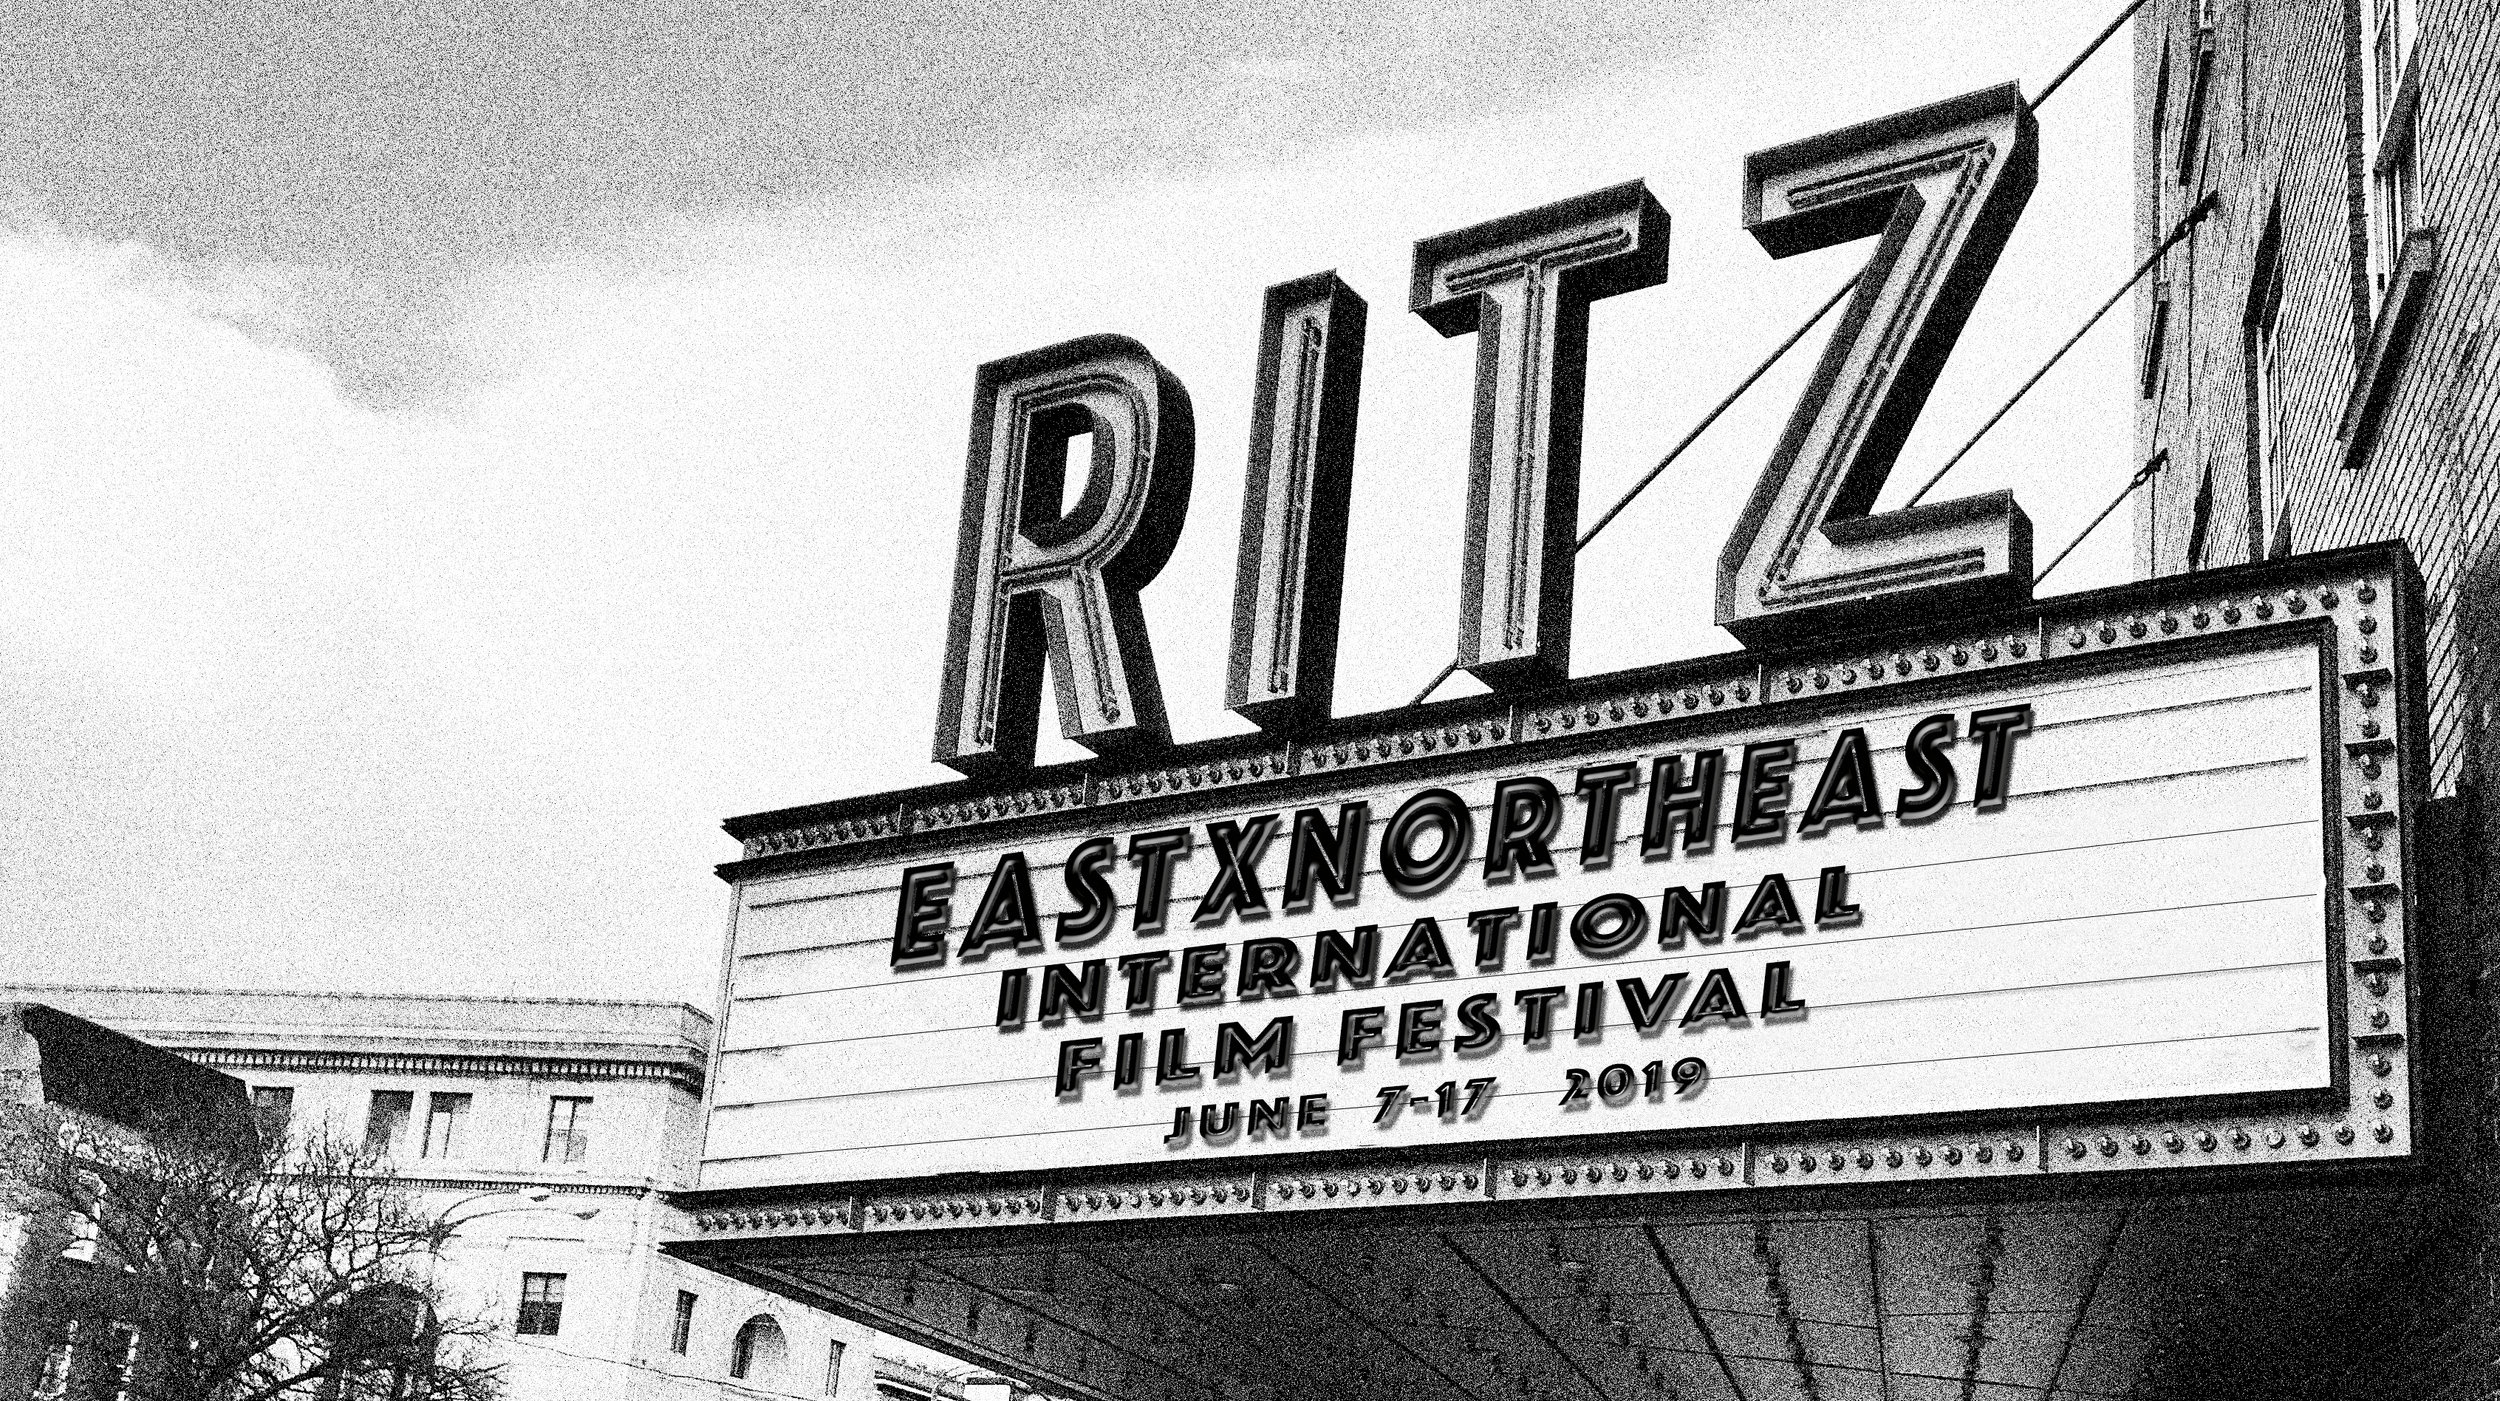 The RITZ THEATER, Newburgh NY